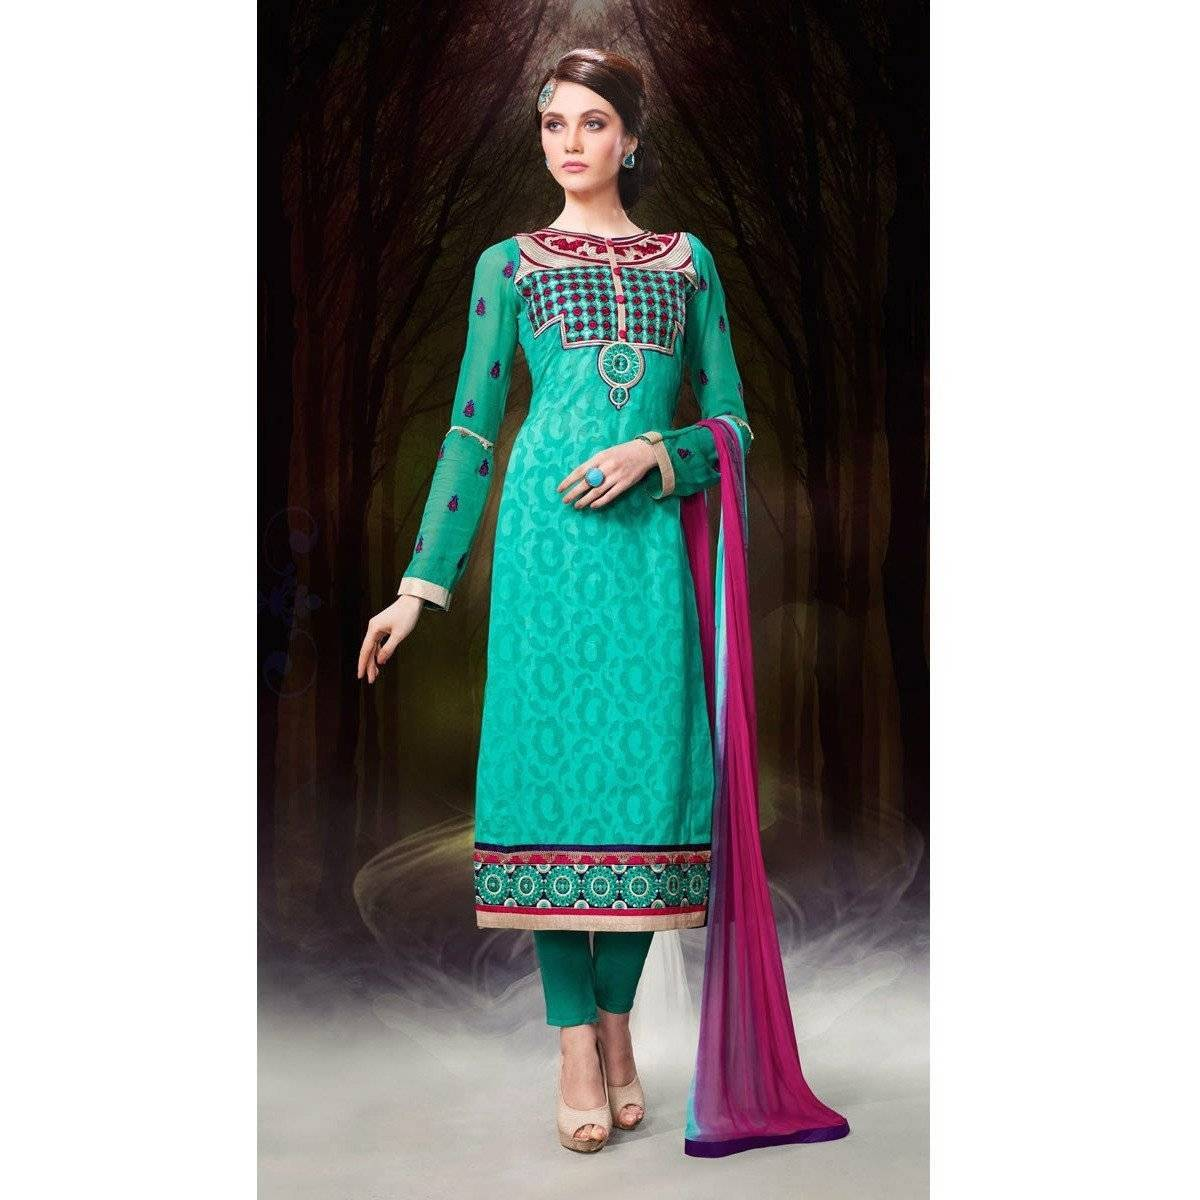 Green Chanderi Cotton Salwar Kameez Dress Materials - rangoutlet.com